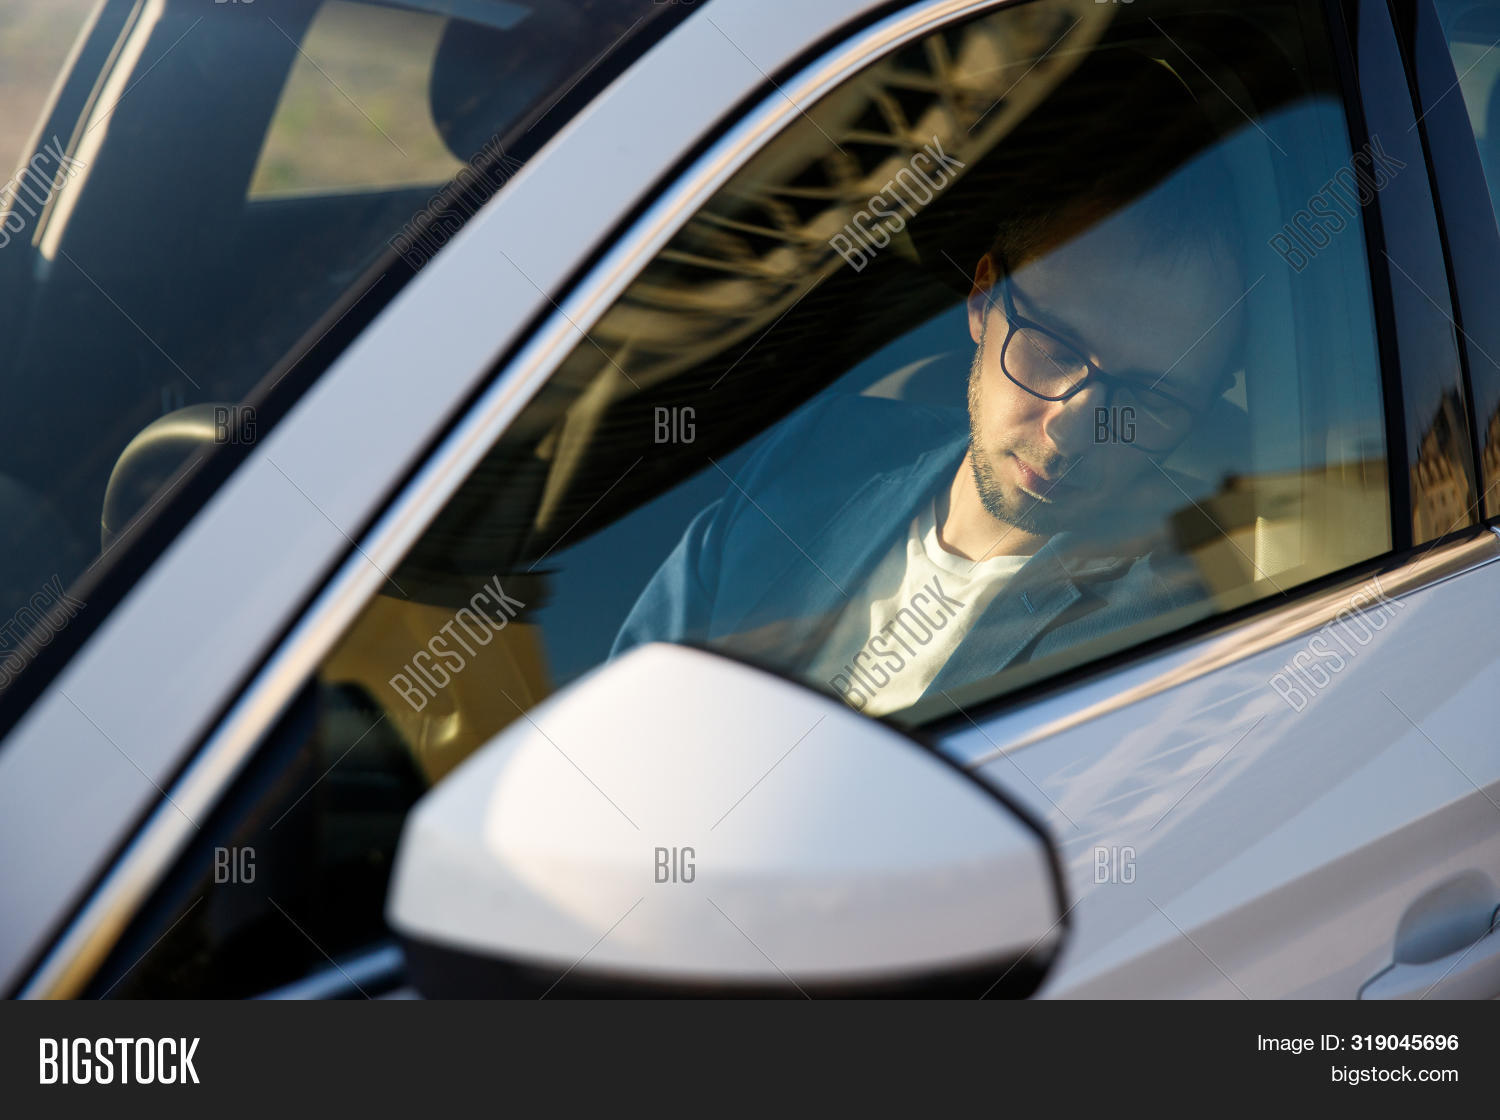 accident,adult,auto,automobile,business,businessman,car,caucasian,closed,drive,driver,exhausted,eye,face,fatigue,glasses,hand,hay,horizontal,male,man,relaxation,resting,road,sitting,sleep,sleepy,tired,transportation,vehicle,wheel,young